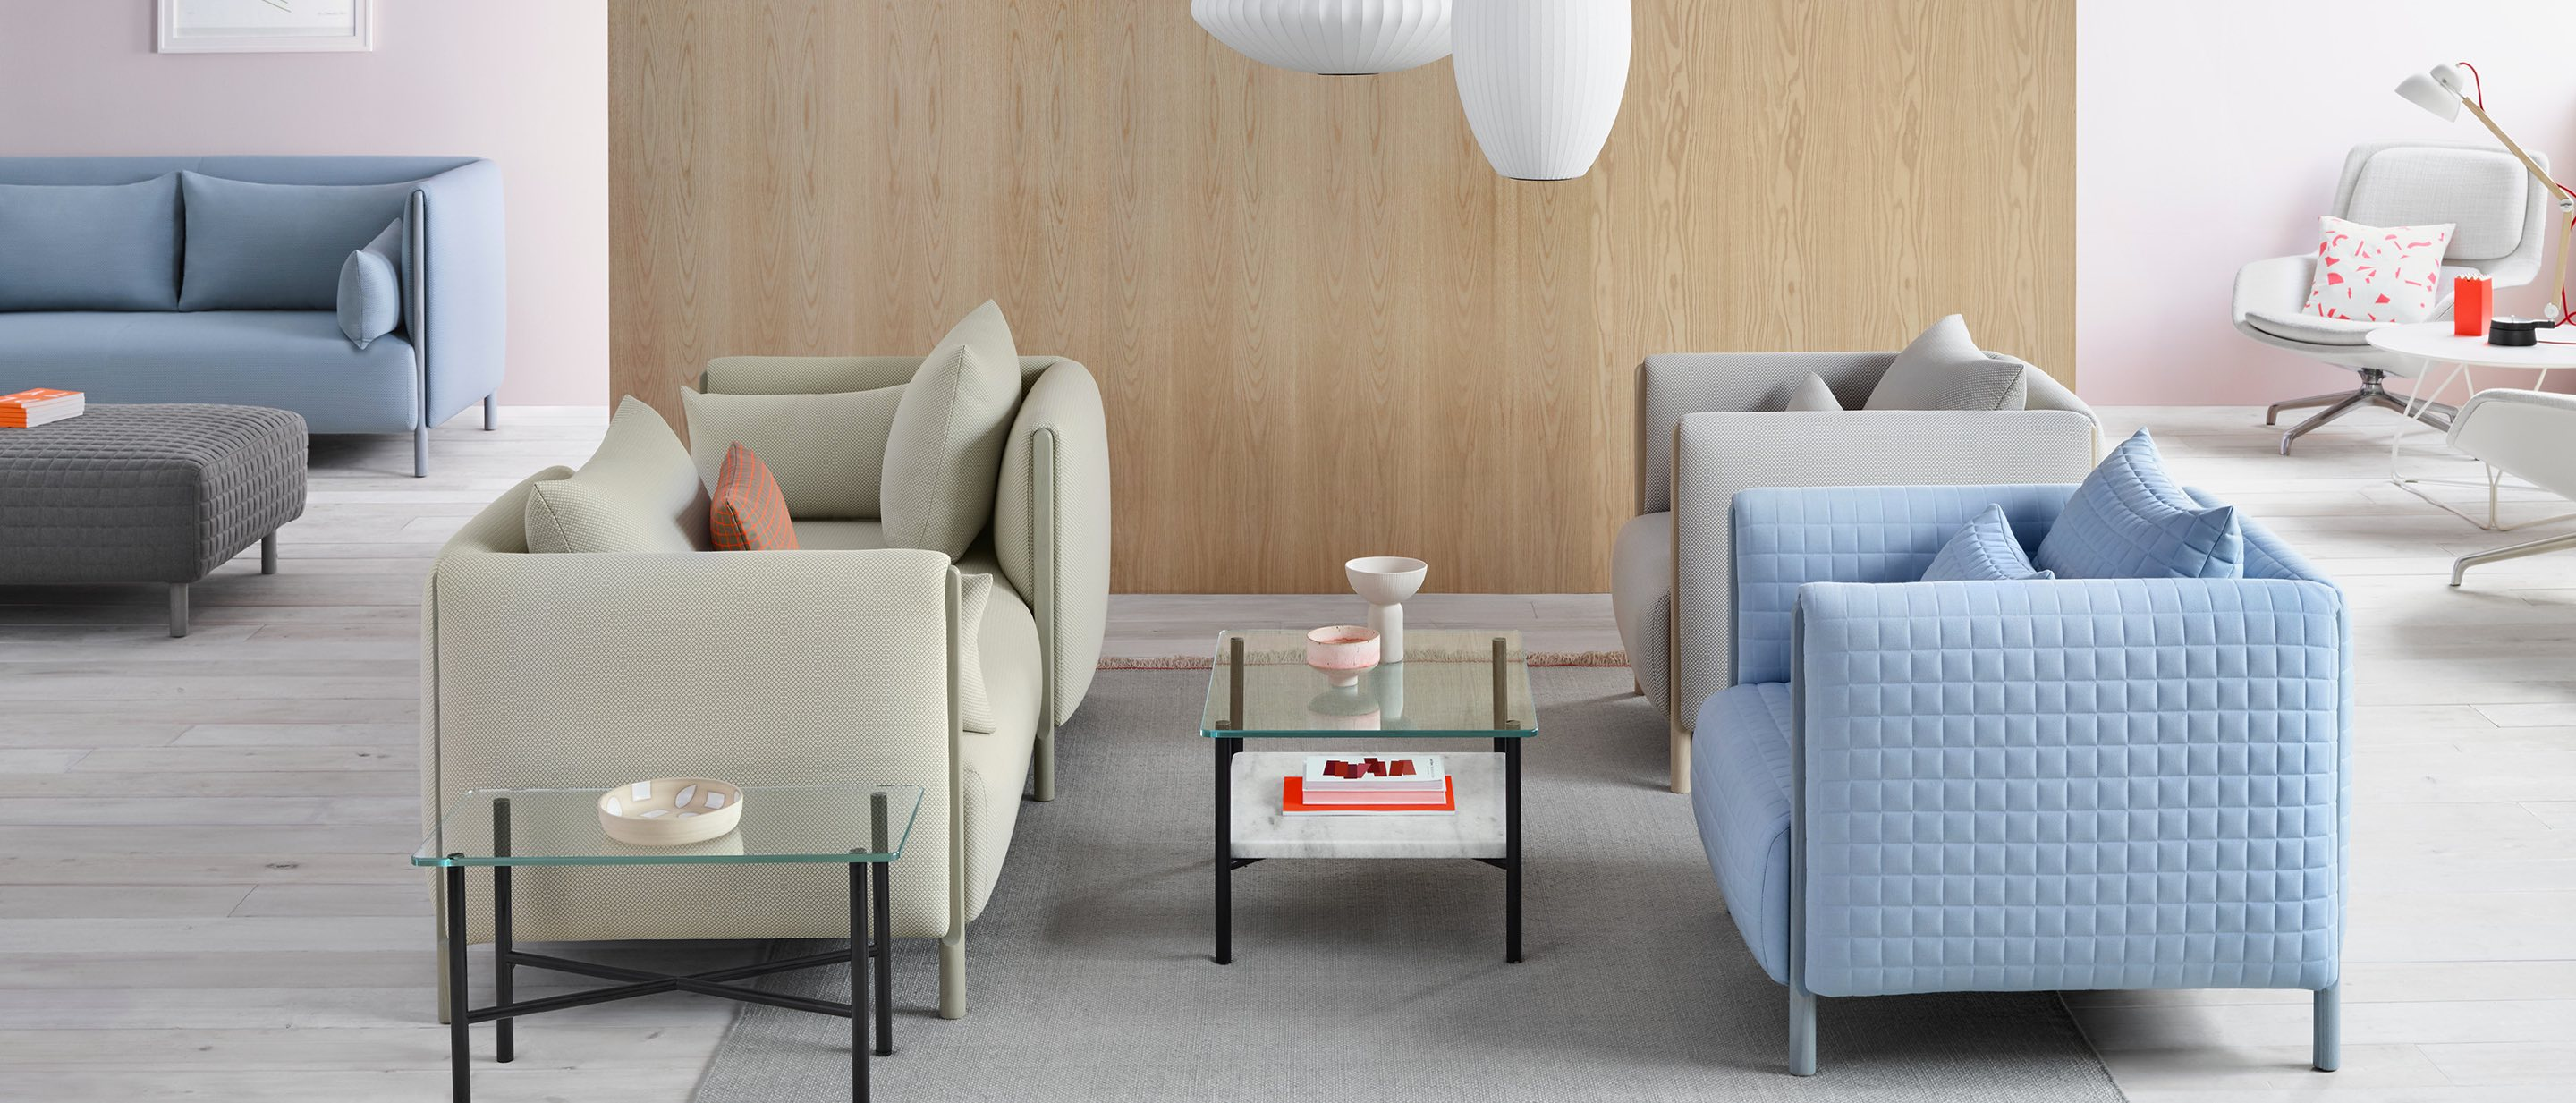 Pastel-colored components from the ColourForm Sofa Group are configured below a trio of Nelson Bubble Lamps to give this lounge area a residential feel.